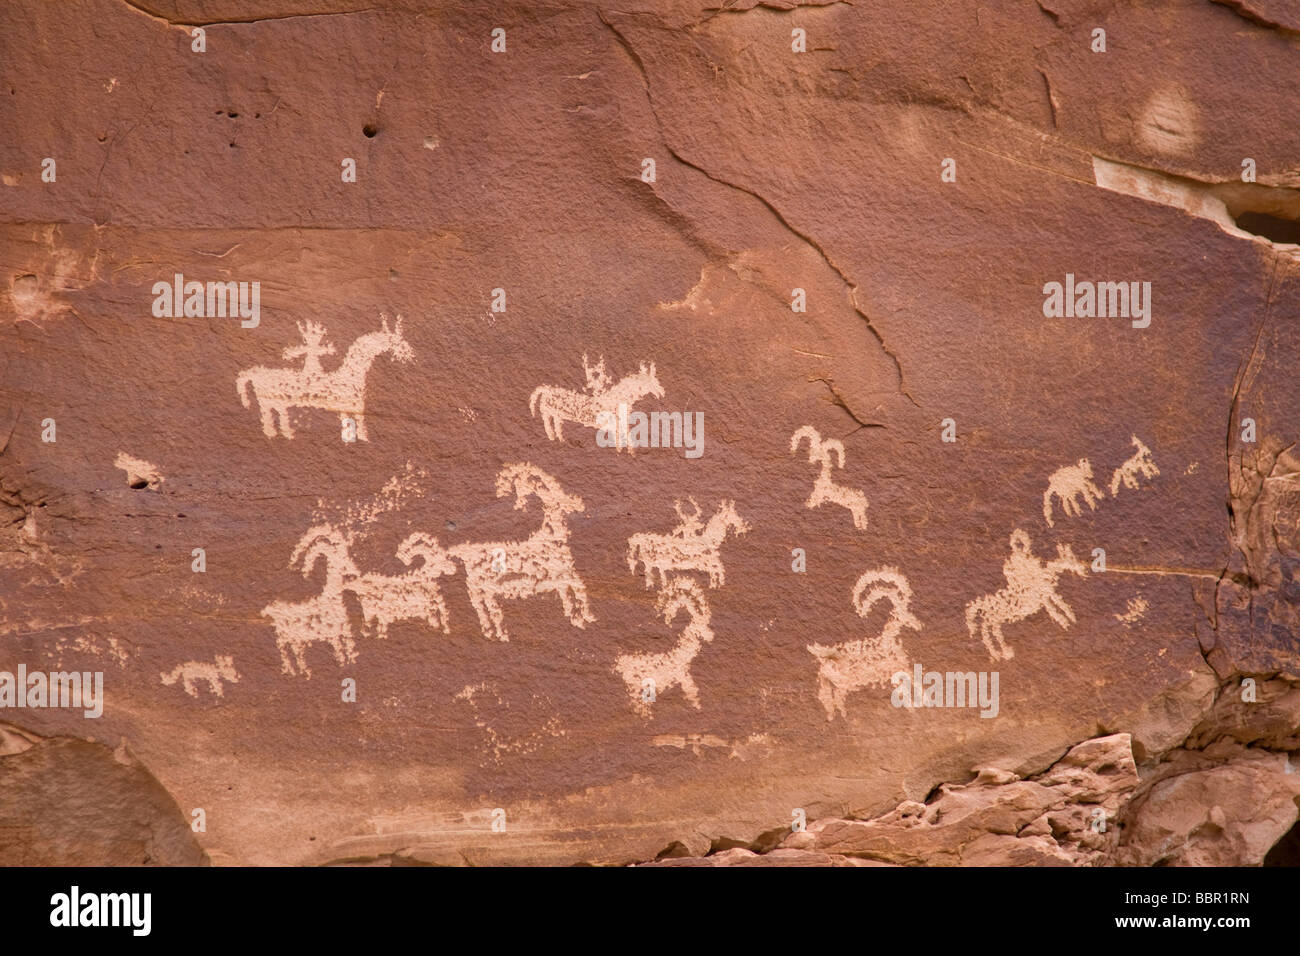 Ute Petroglyphs, Wolfe Ranch, Arches National Park, Utah - Stock Image